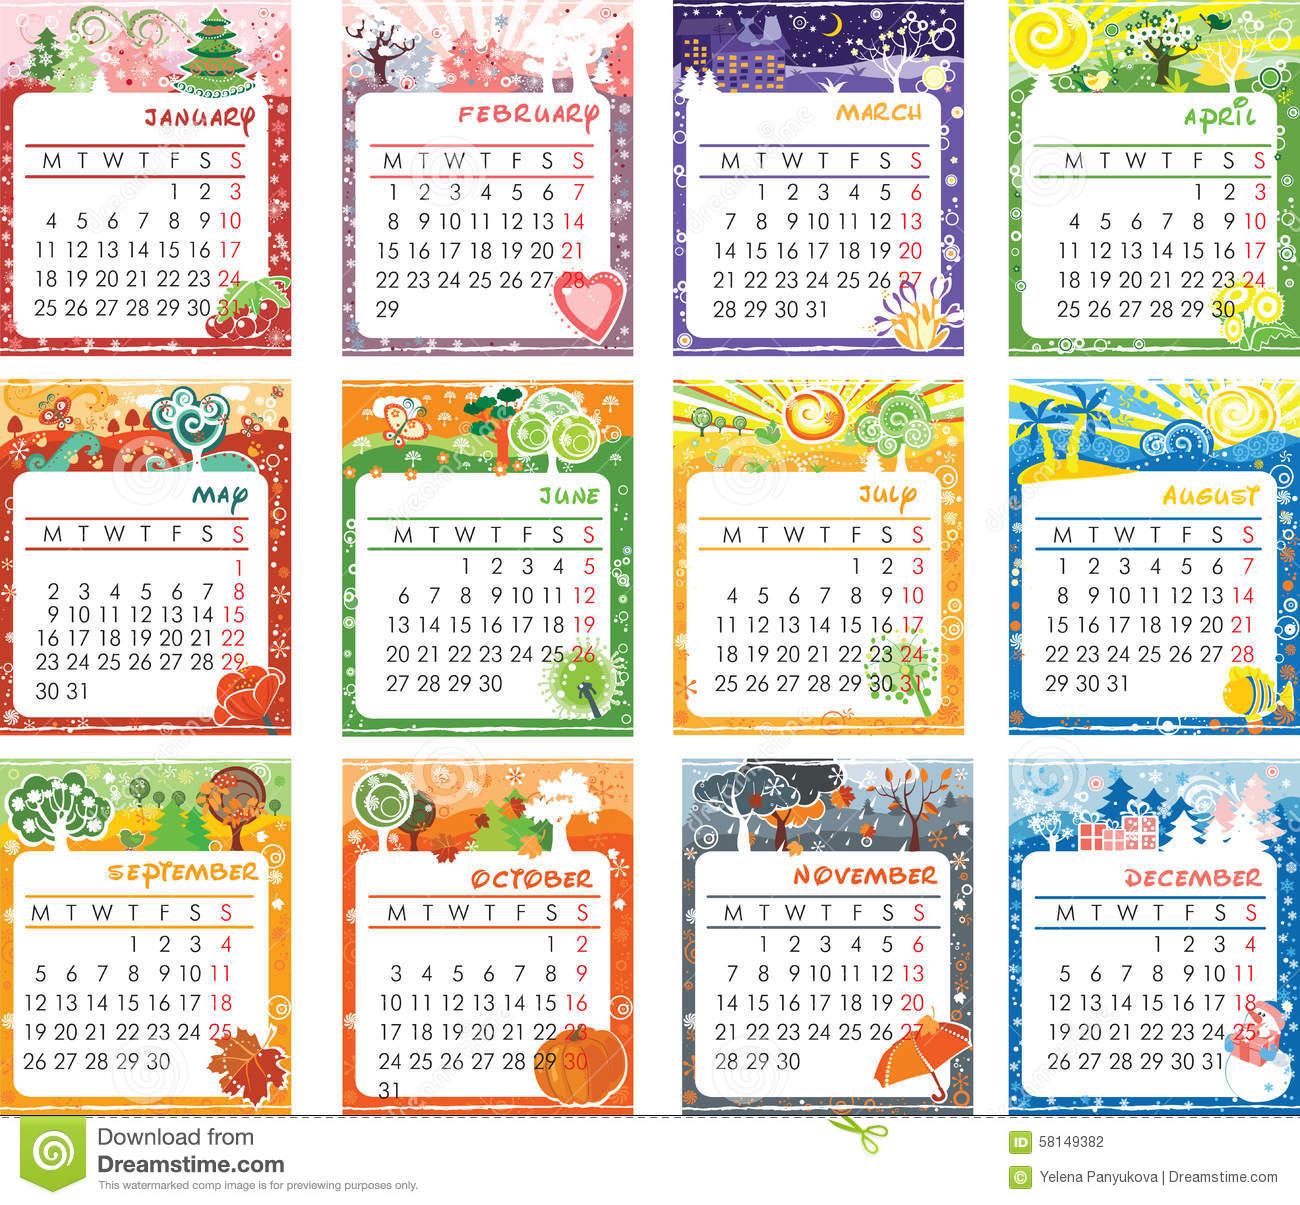 Calendar Design Ideas Vector : Calendar design stock illustration of